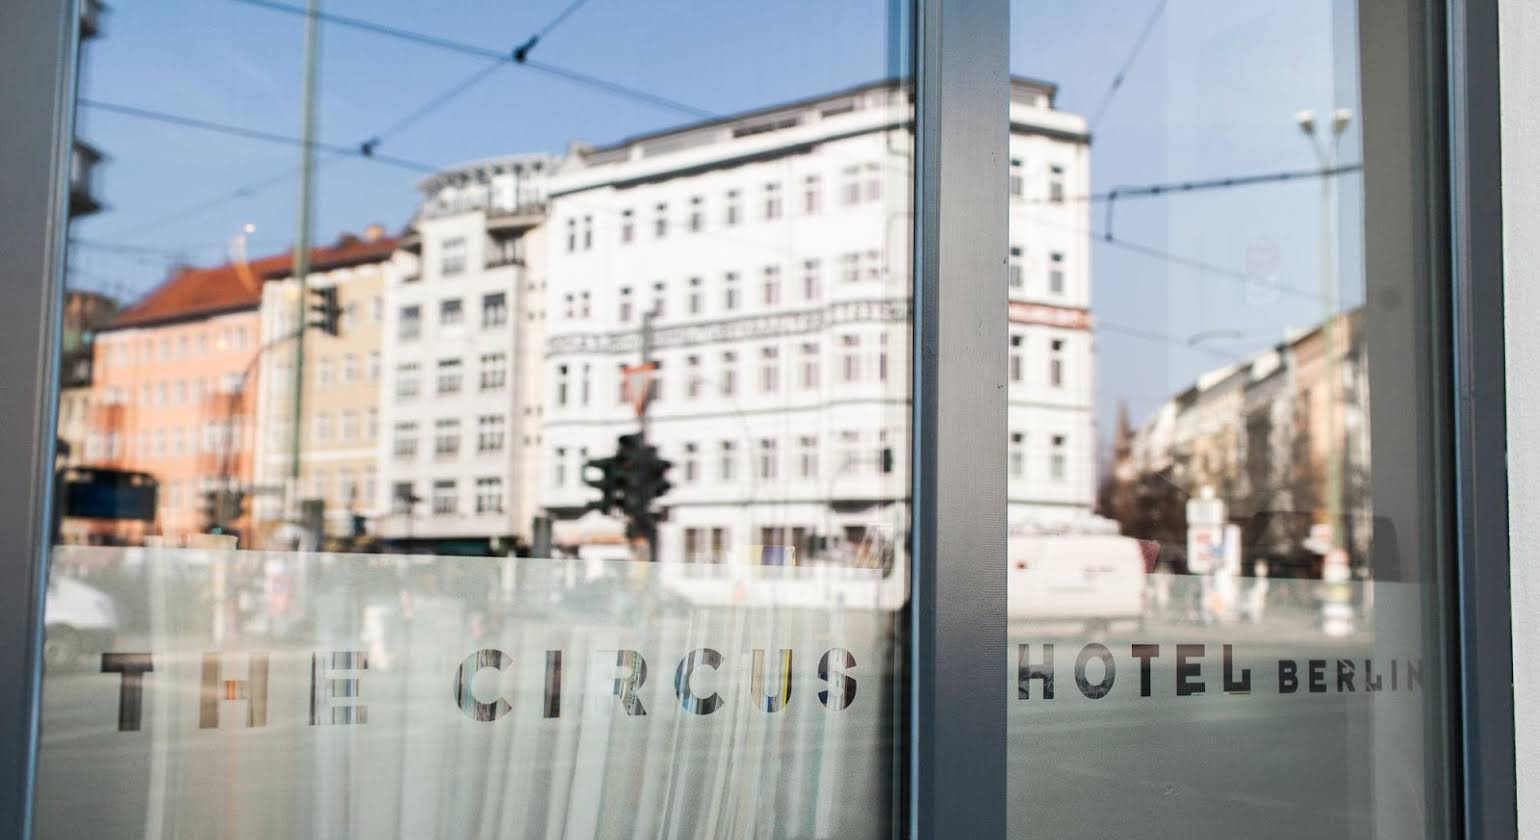 The Circus Hotel